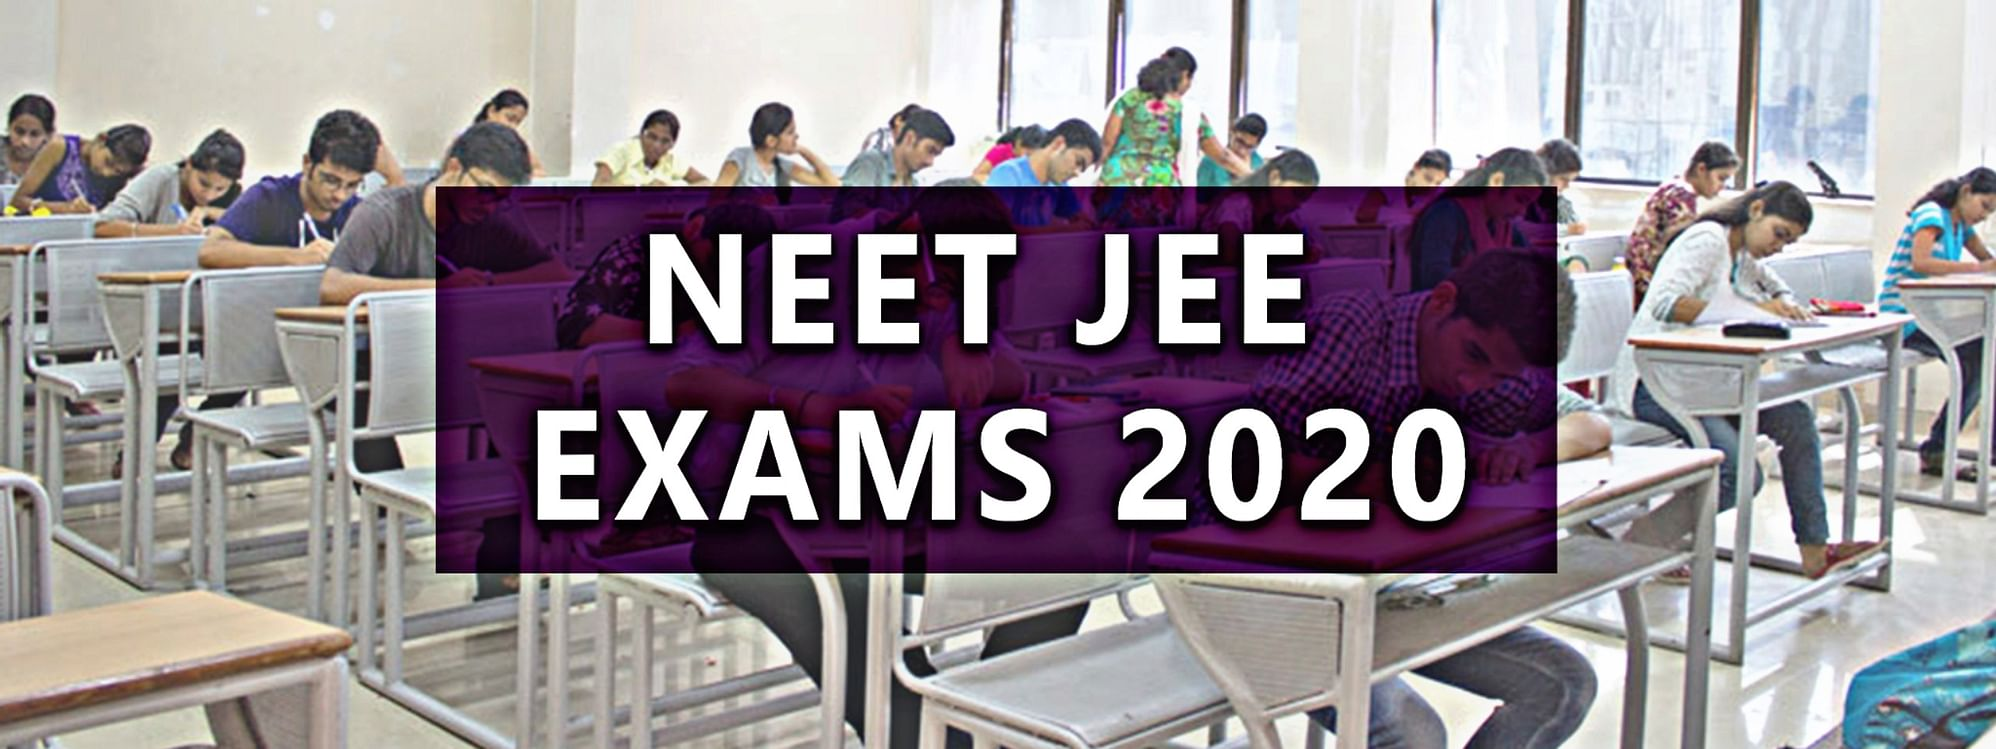 NEET, JEE Main 2020: No no Rethink on Postponing Exams- Education Ministry